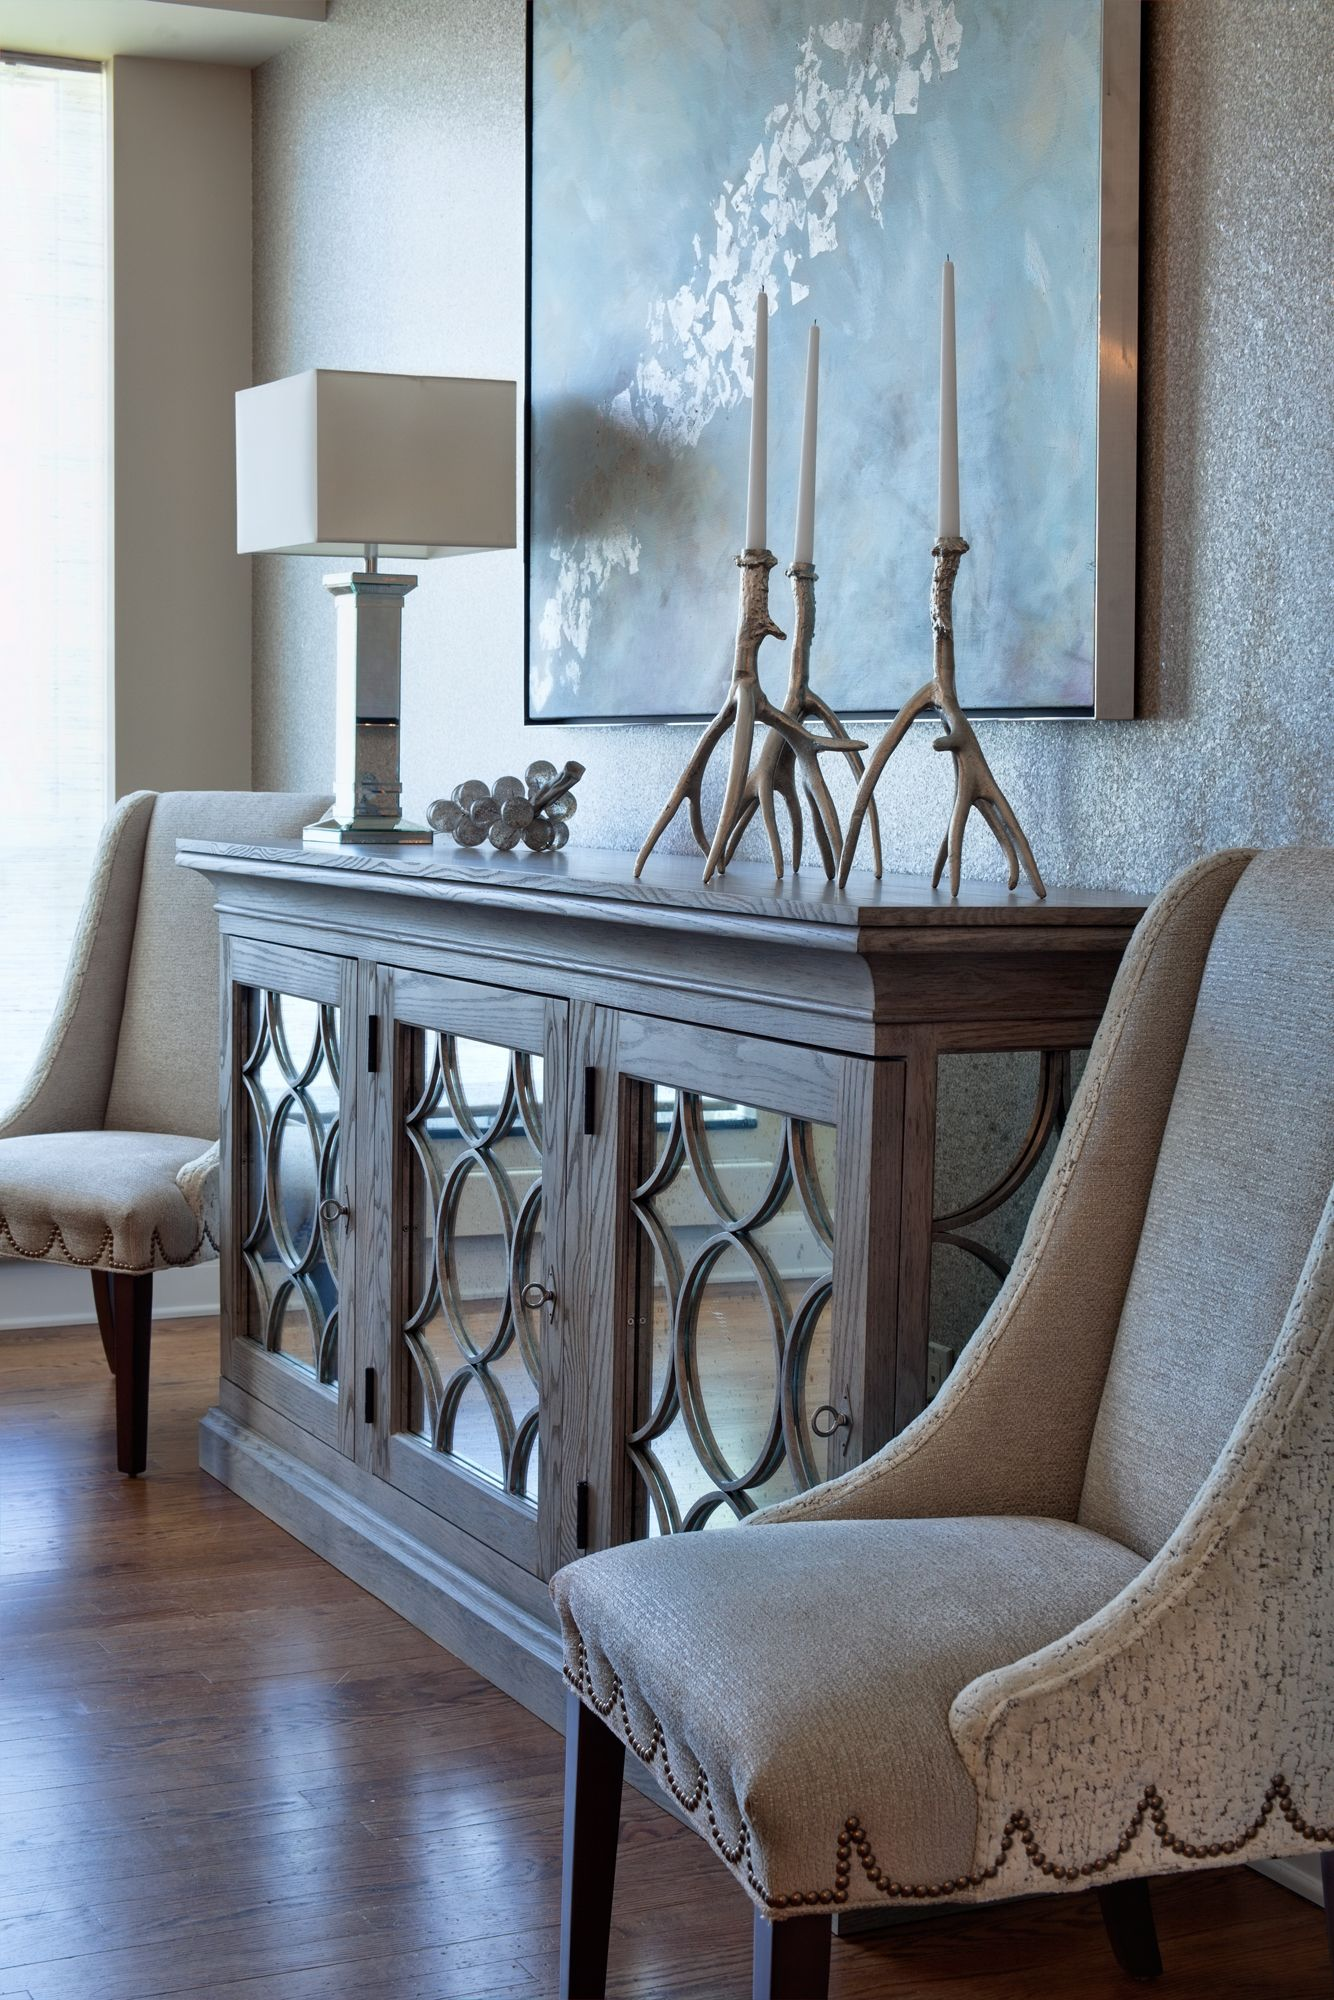 Beautiful Reclaimed Wood And Mirror Paneled Buffet Cabinet Abstract Art Polished Nickel Table Lamp Manzanita Candle Holders